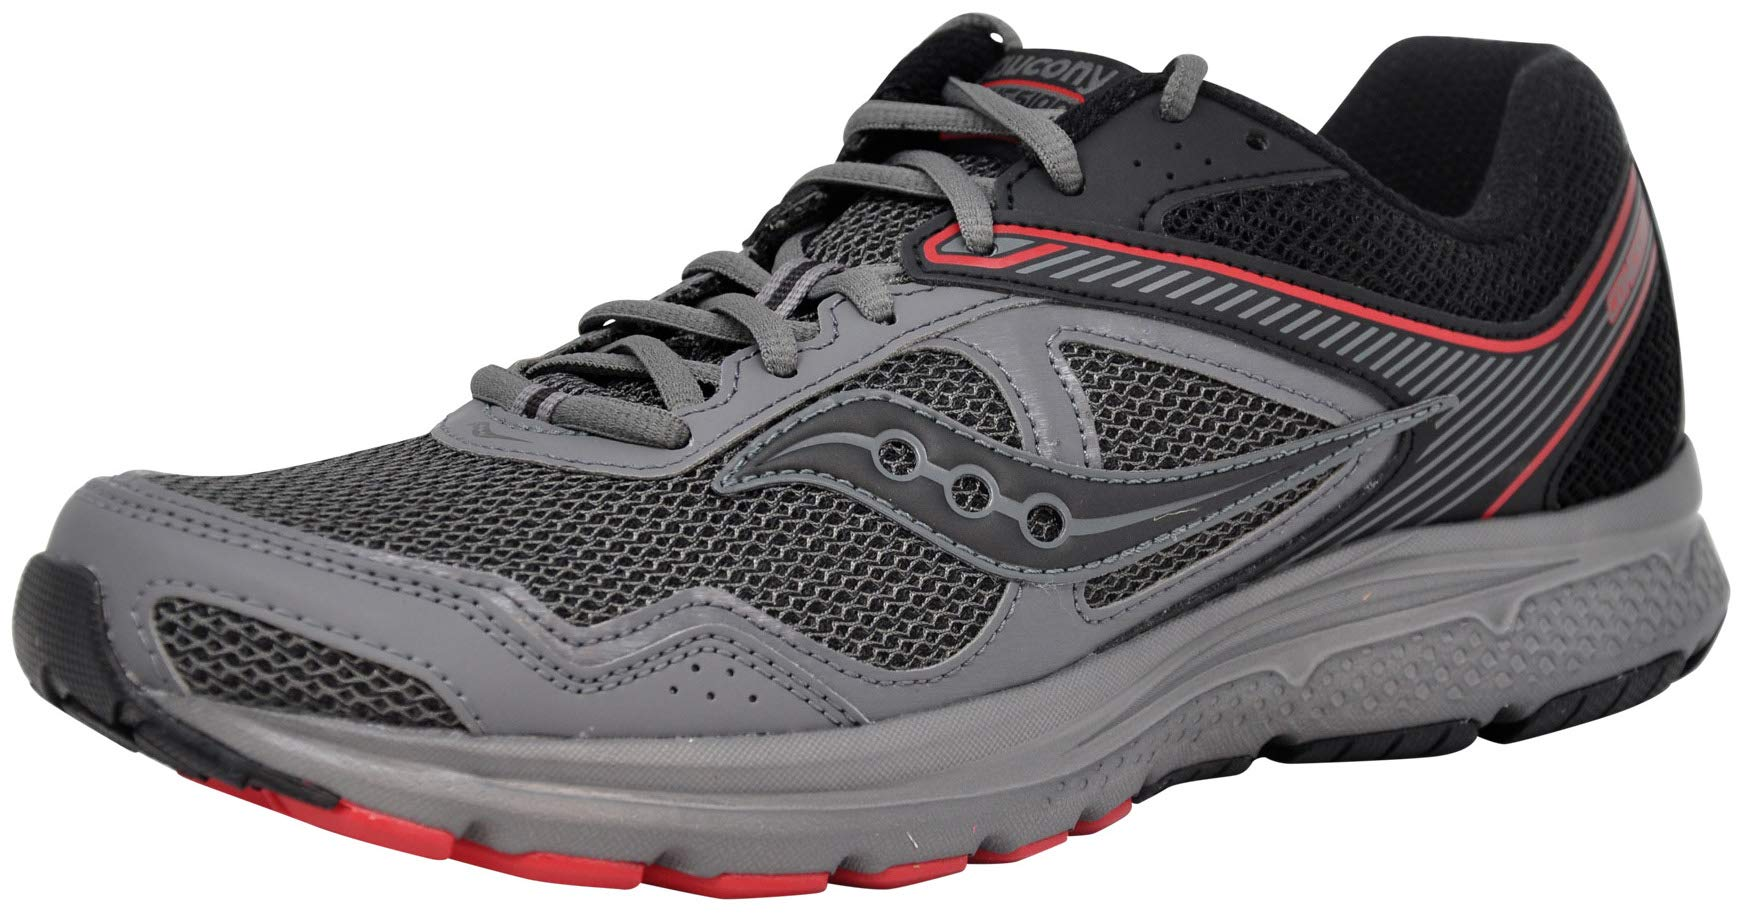 0af8b151fb2 Best Rated in Men's Shoes & Helpful Customer Reviews - Amazon.com